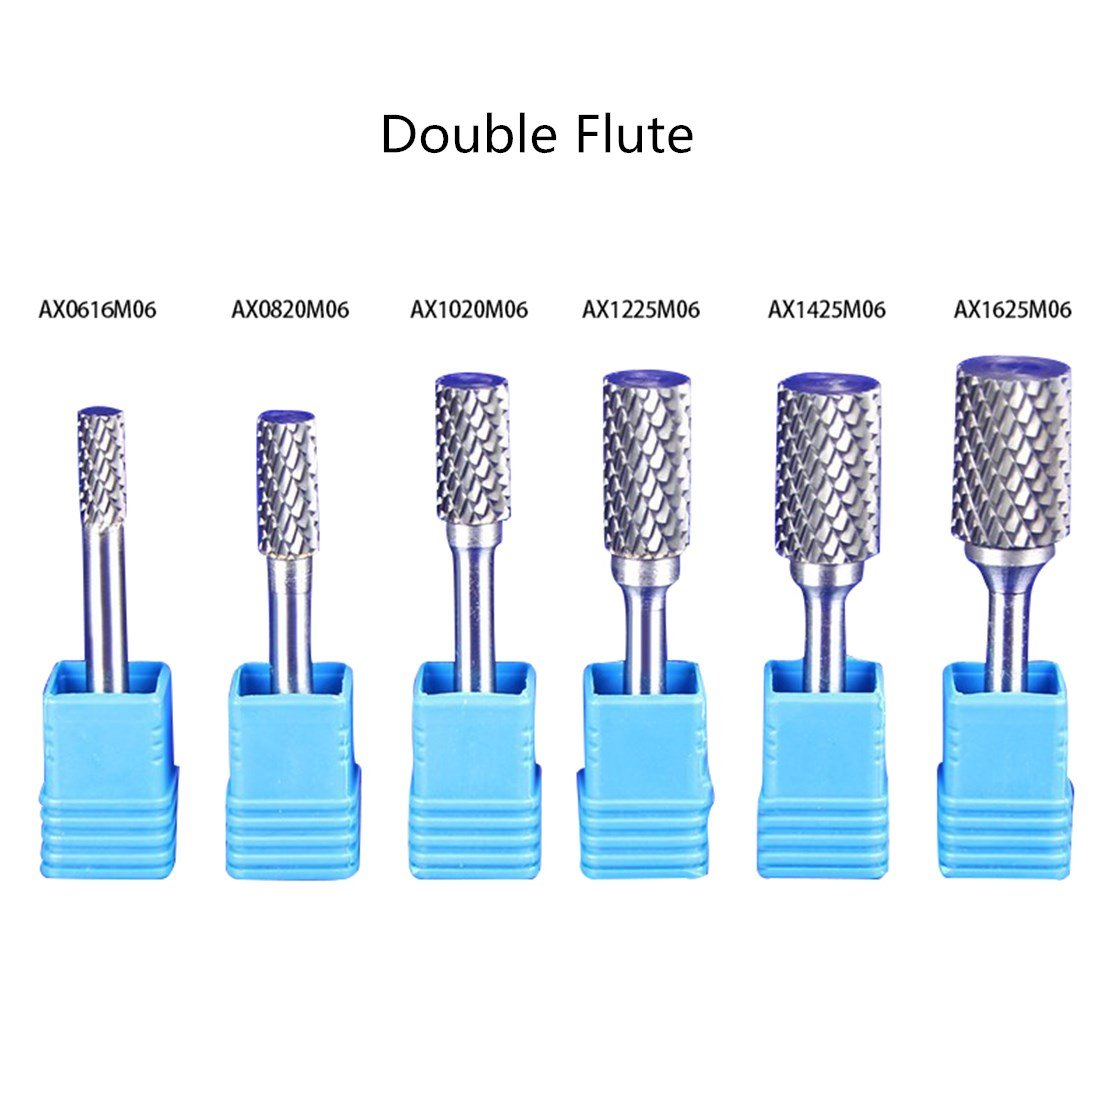 Premium CARBIDE Double Flute Cut Rotary Burr File 1/4'' 6mm SHK 8mm HEAD Cylindrical